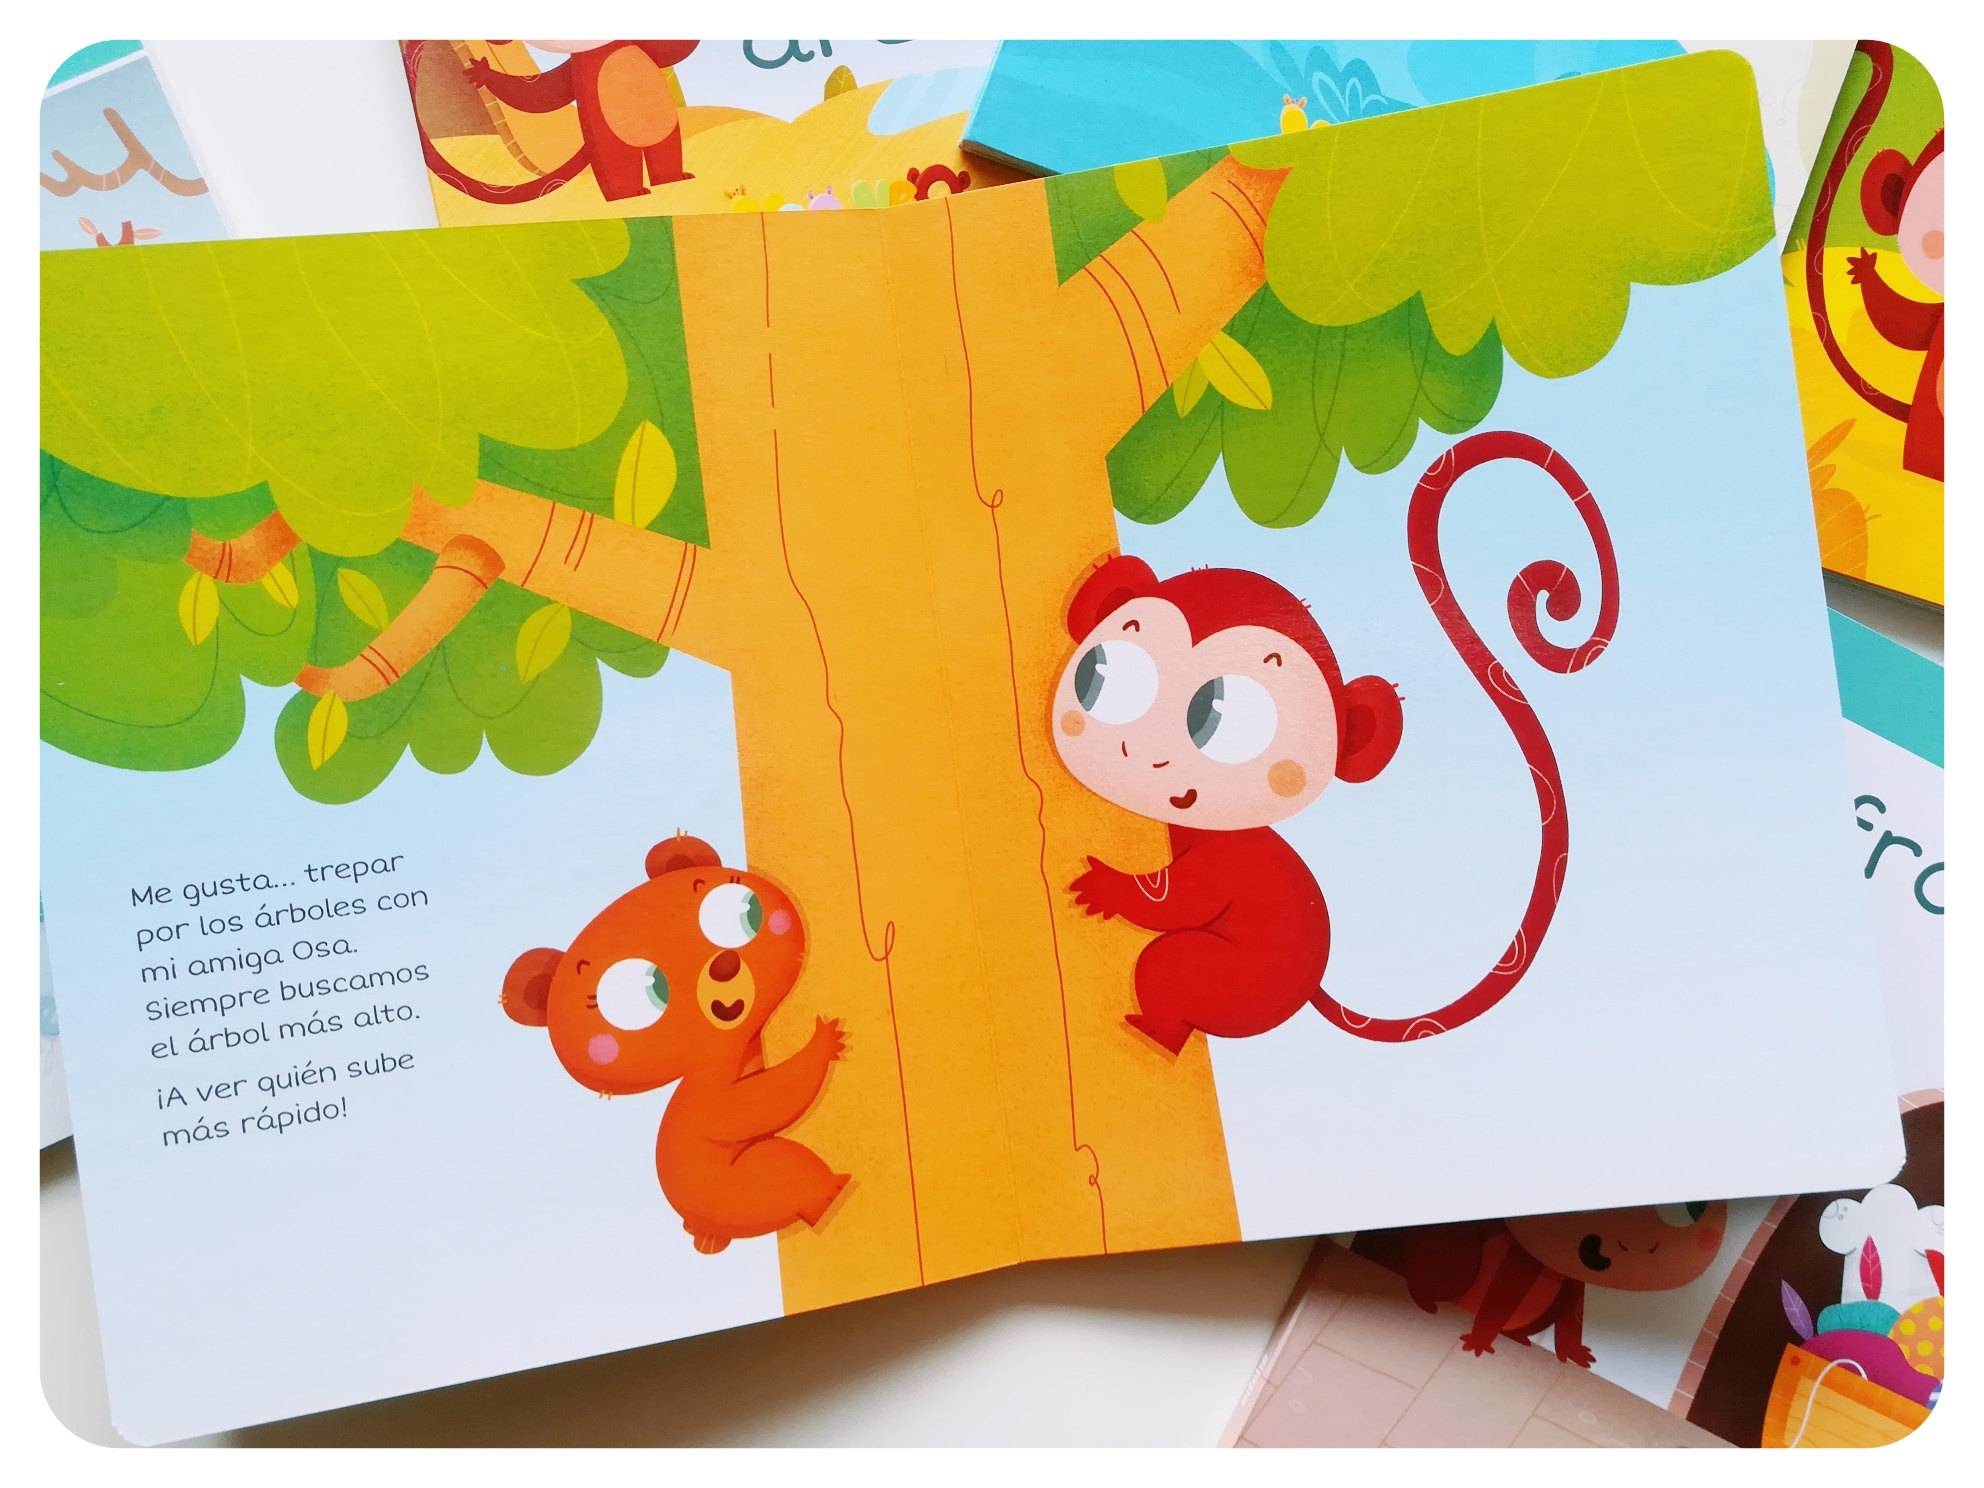 proyecto_veo_veo_editorial_edebe_itico_book_children_illustration